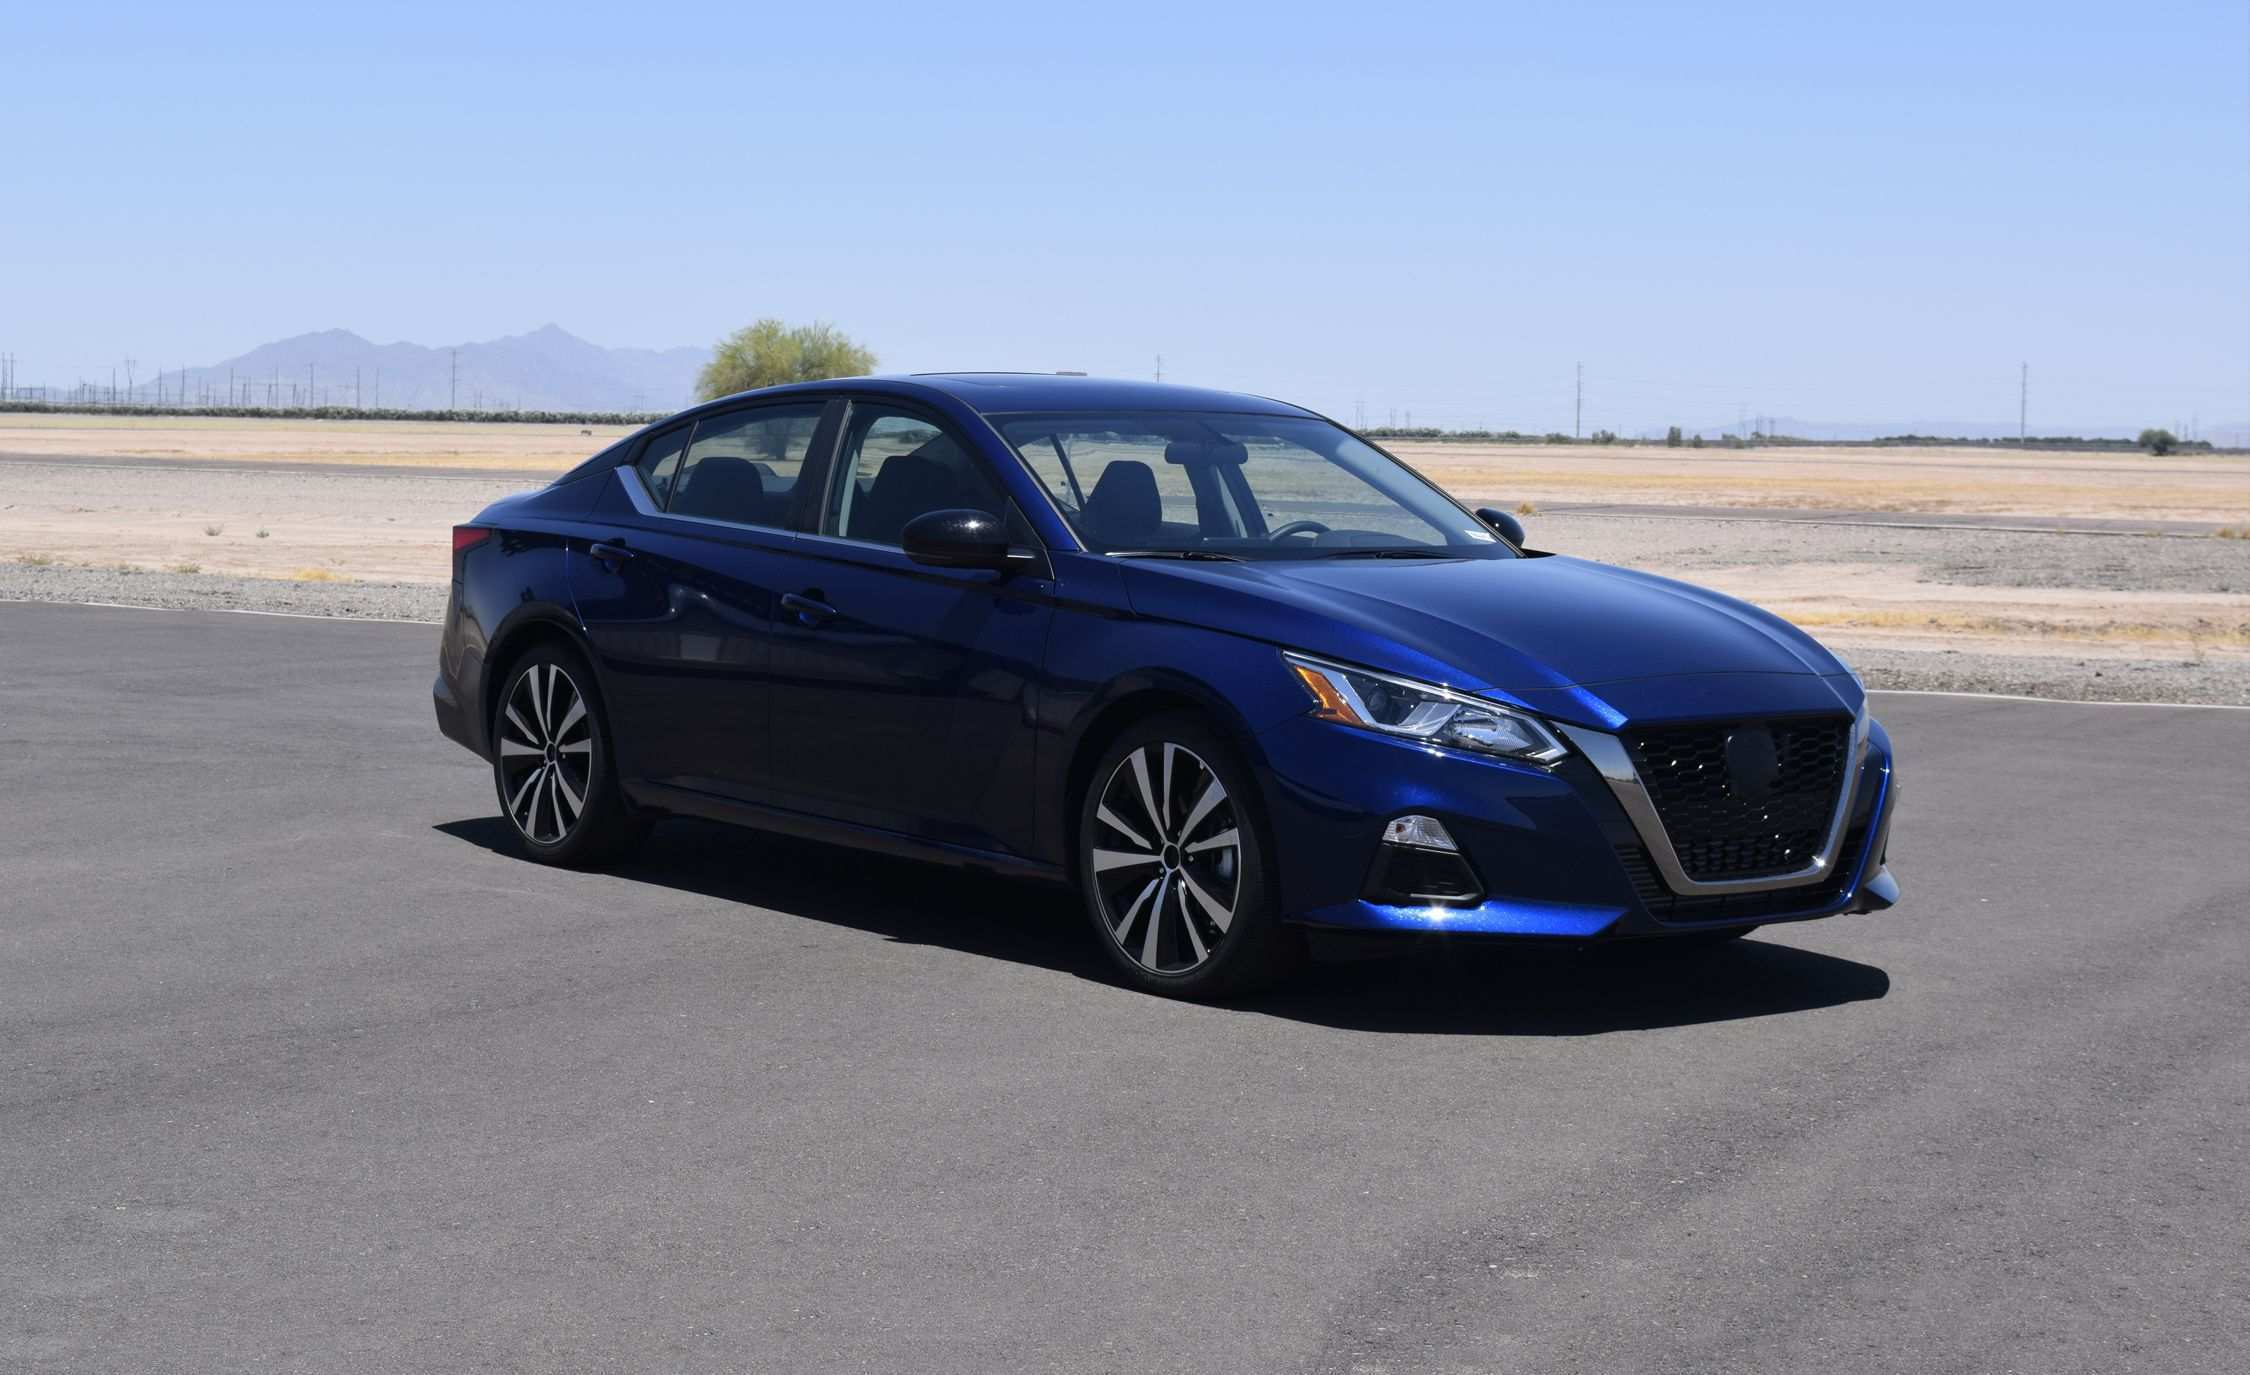 51 A Nissan Altima 2019 Horsepower Prices